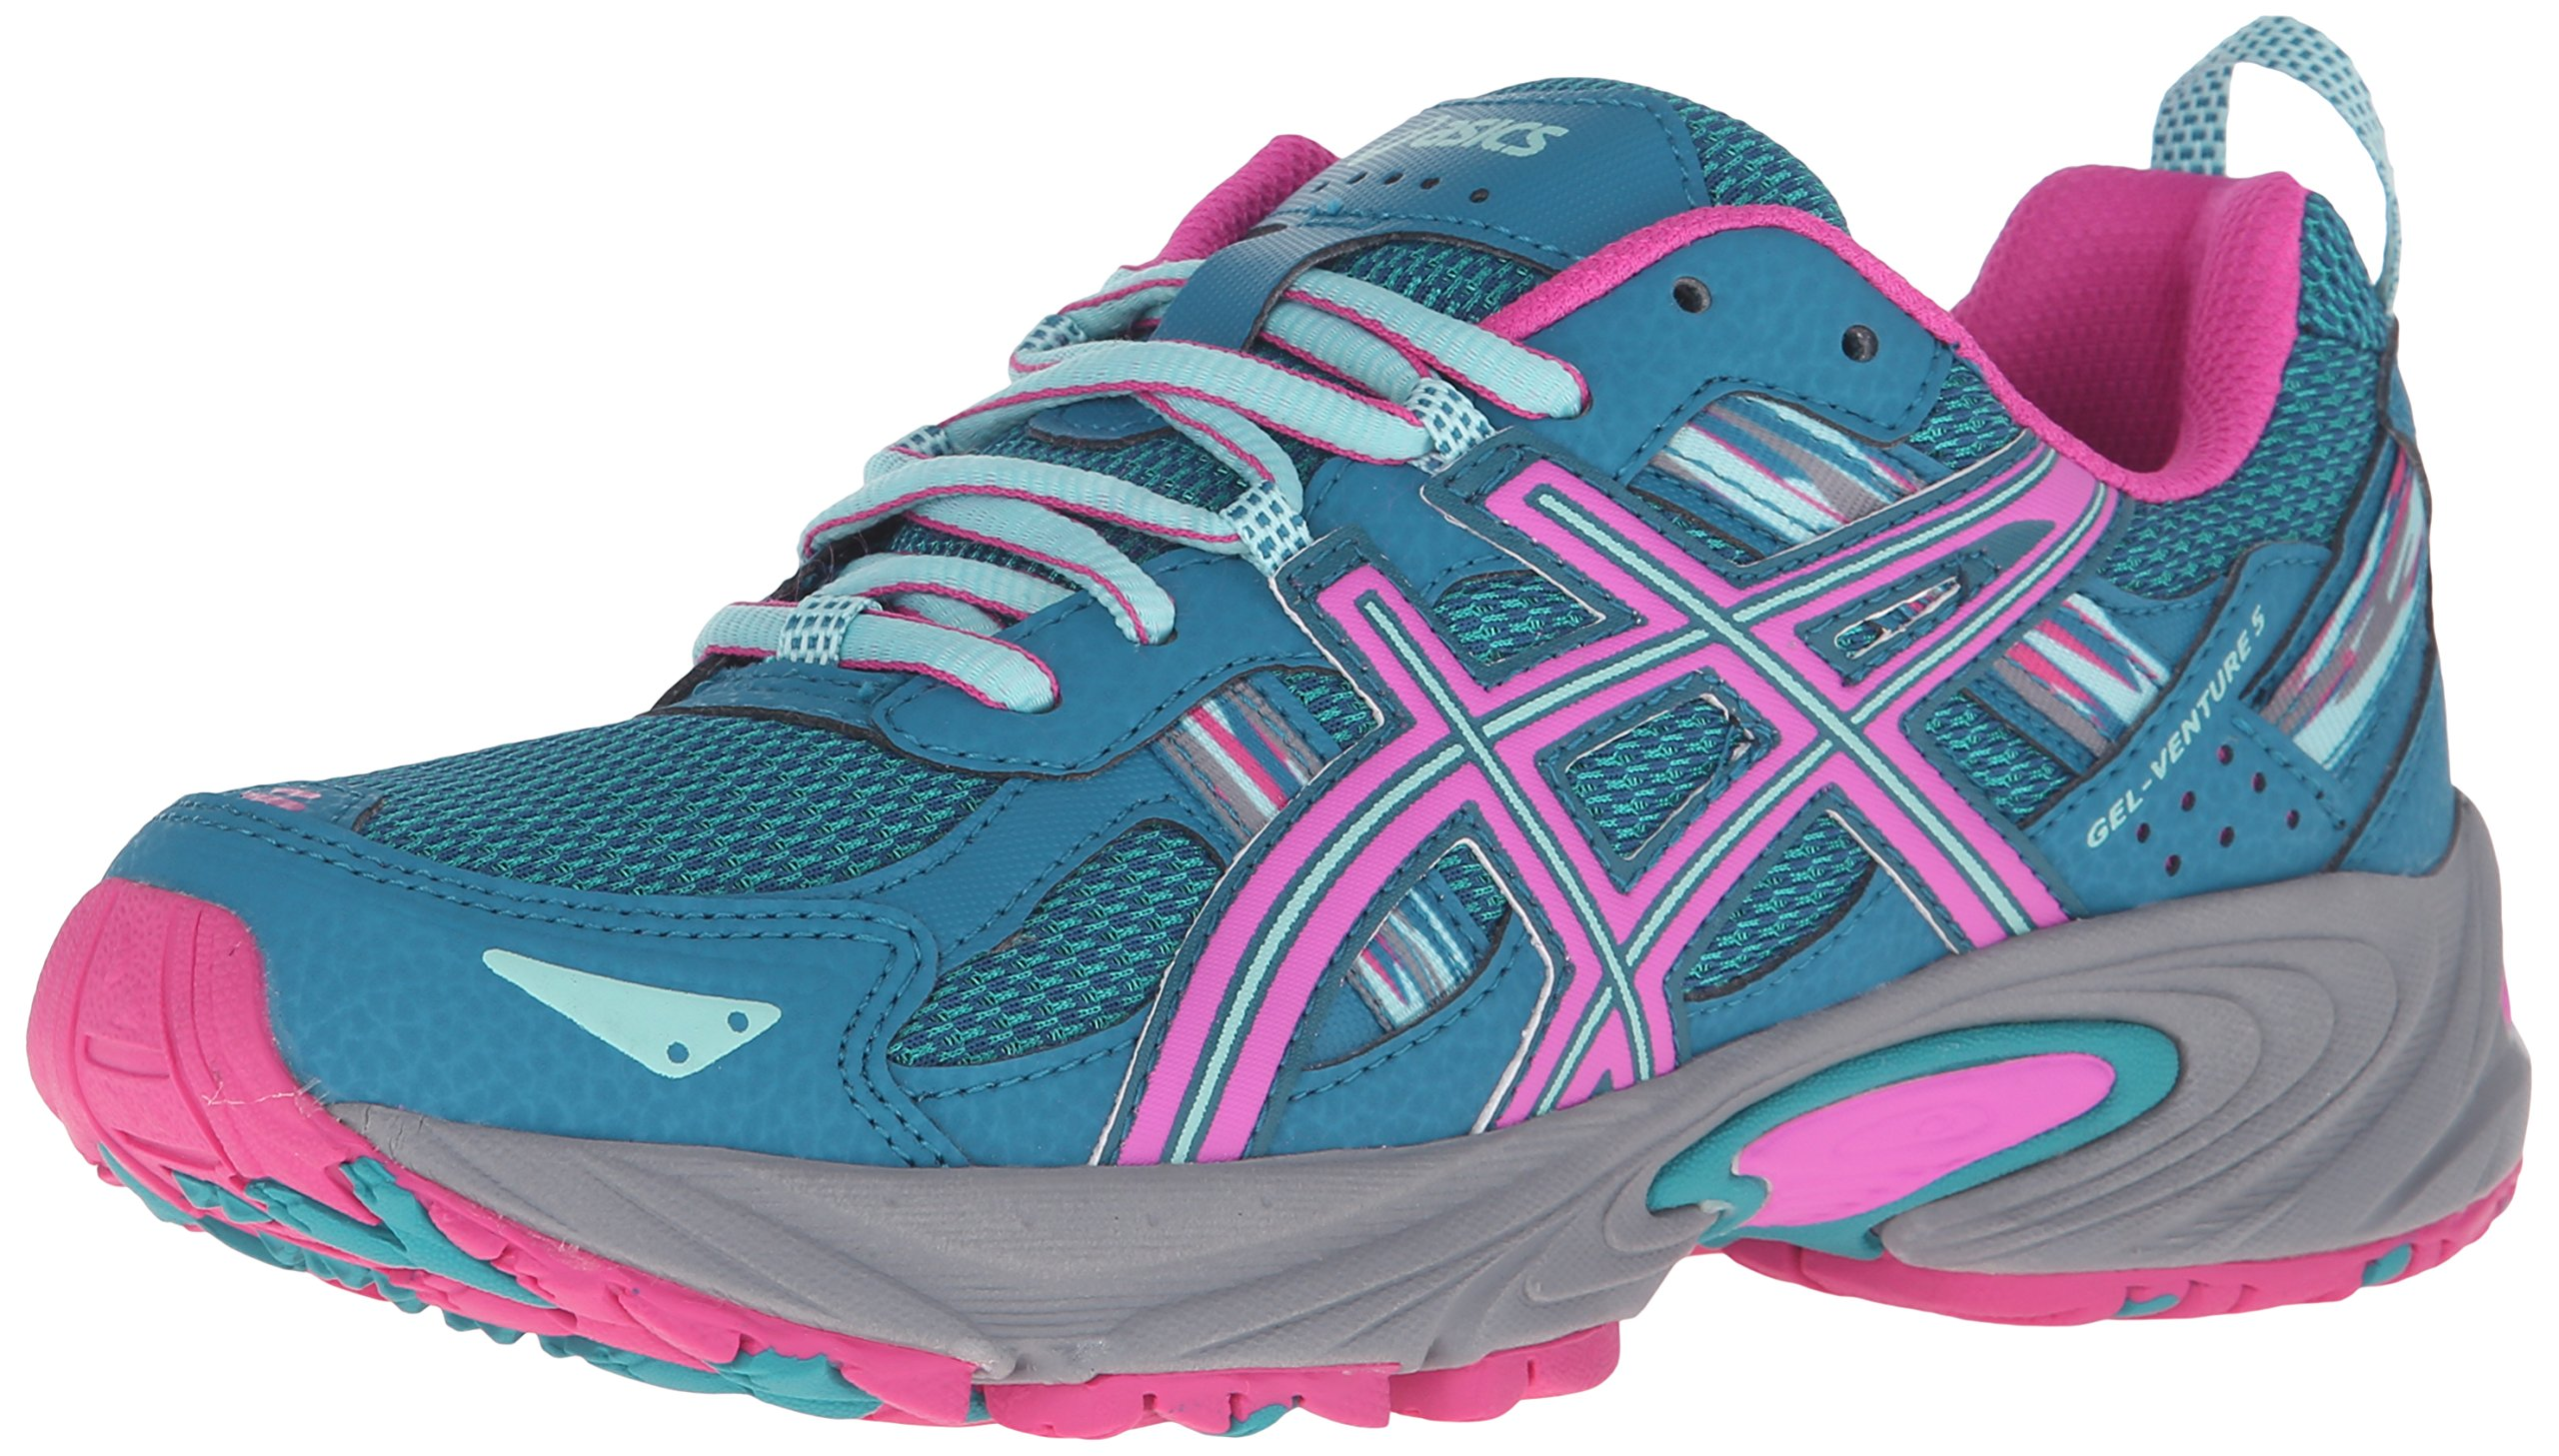 ASICS Women's Gel-Venture 5 Trail Runner Ocean Depth/Pink Glow/Aruba Blue 6 M US